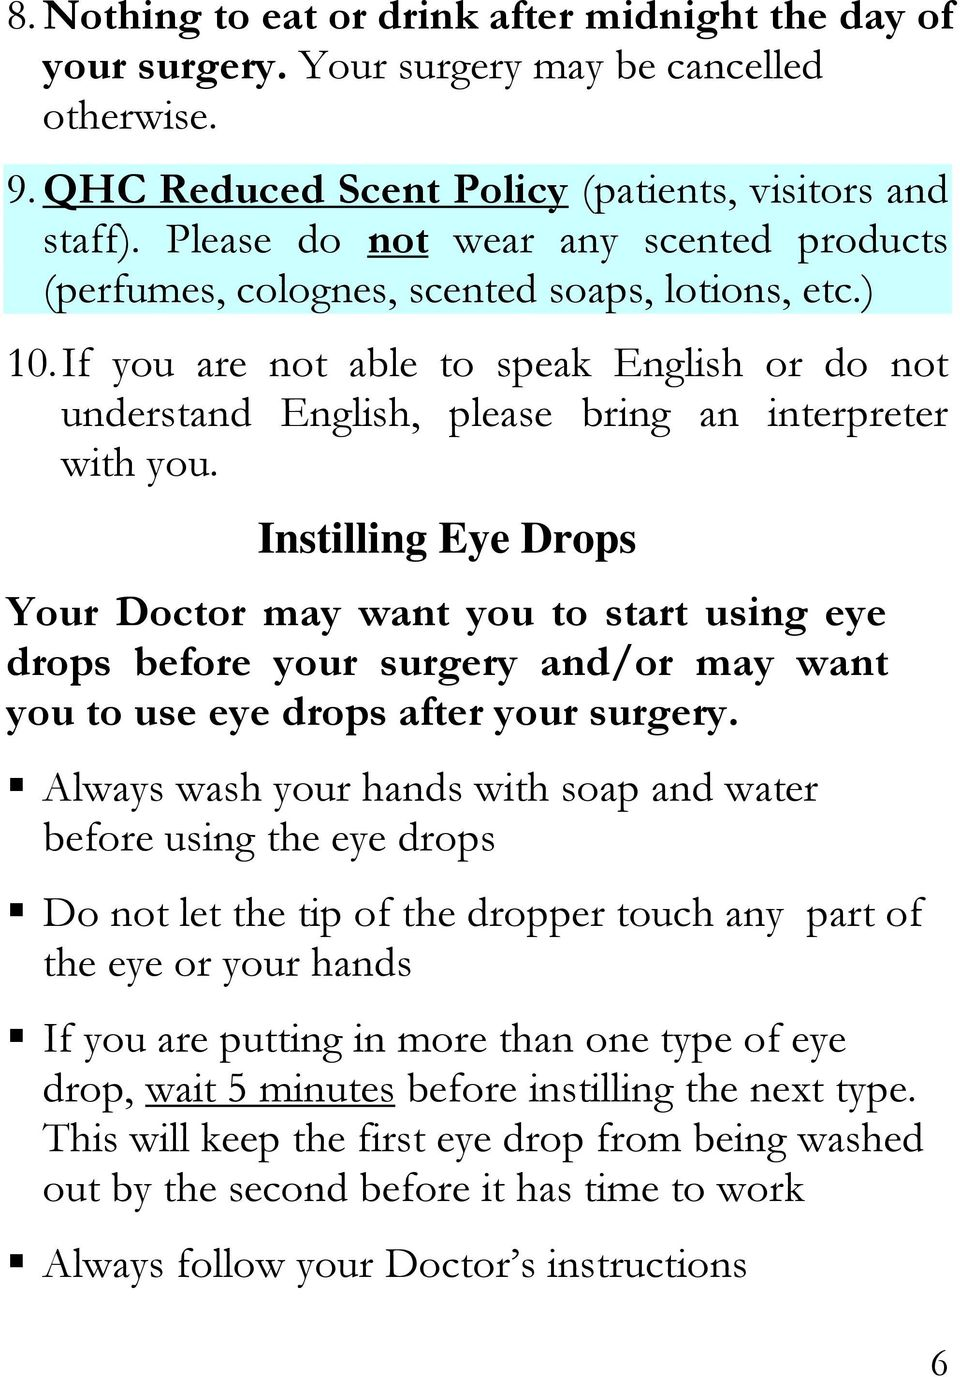 Instilling Eye Drops Your Doctor may want you to start using eye drops before your surgery and/or may want you to use eye drops after your surgery.